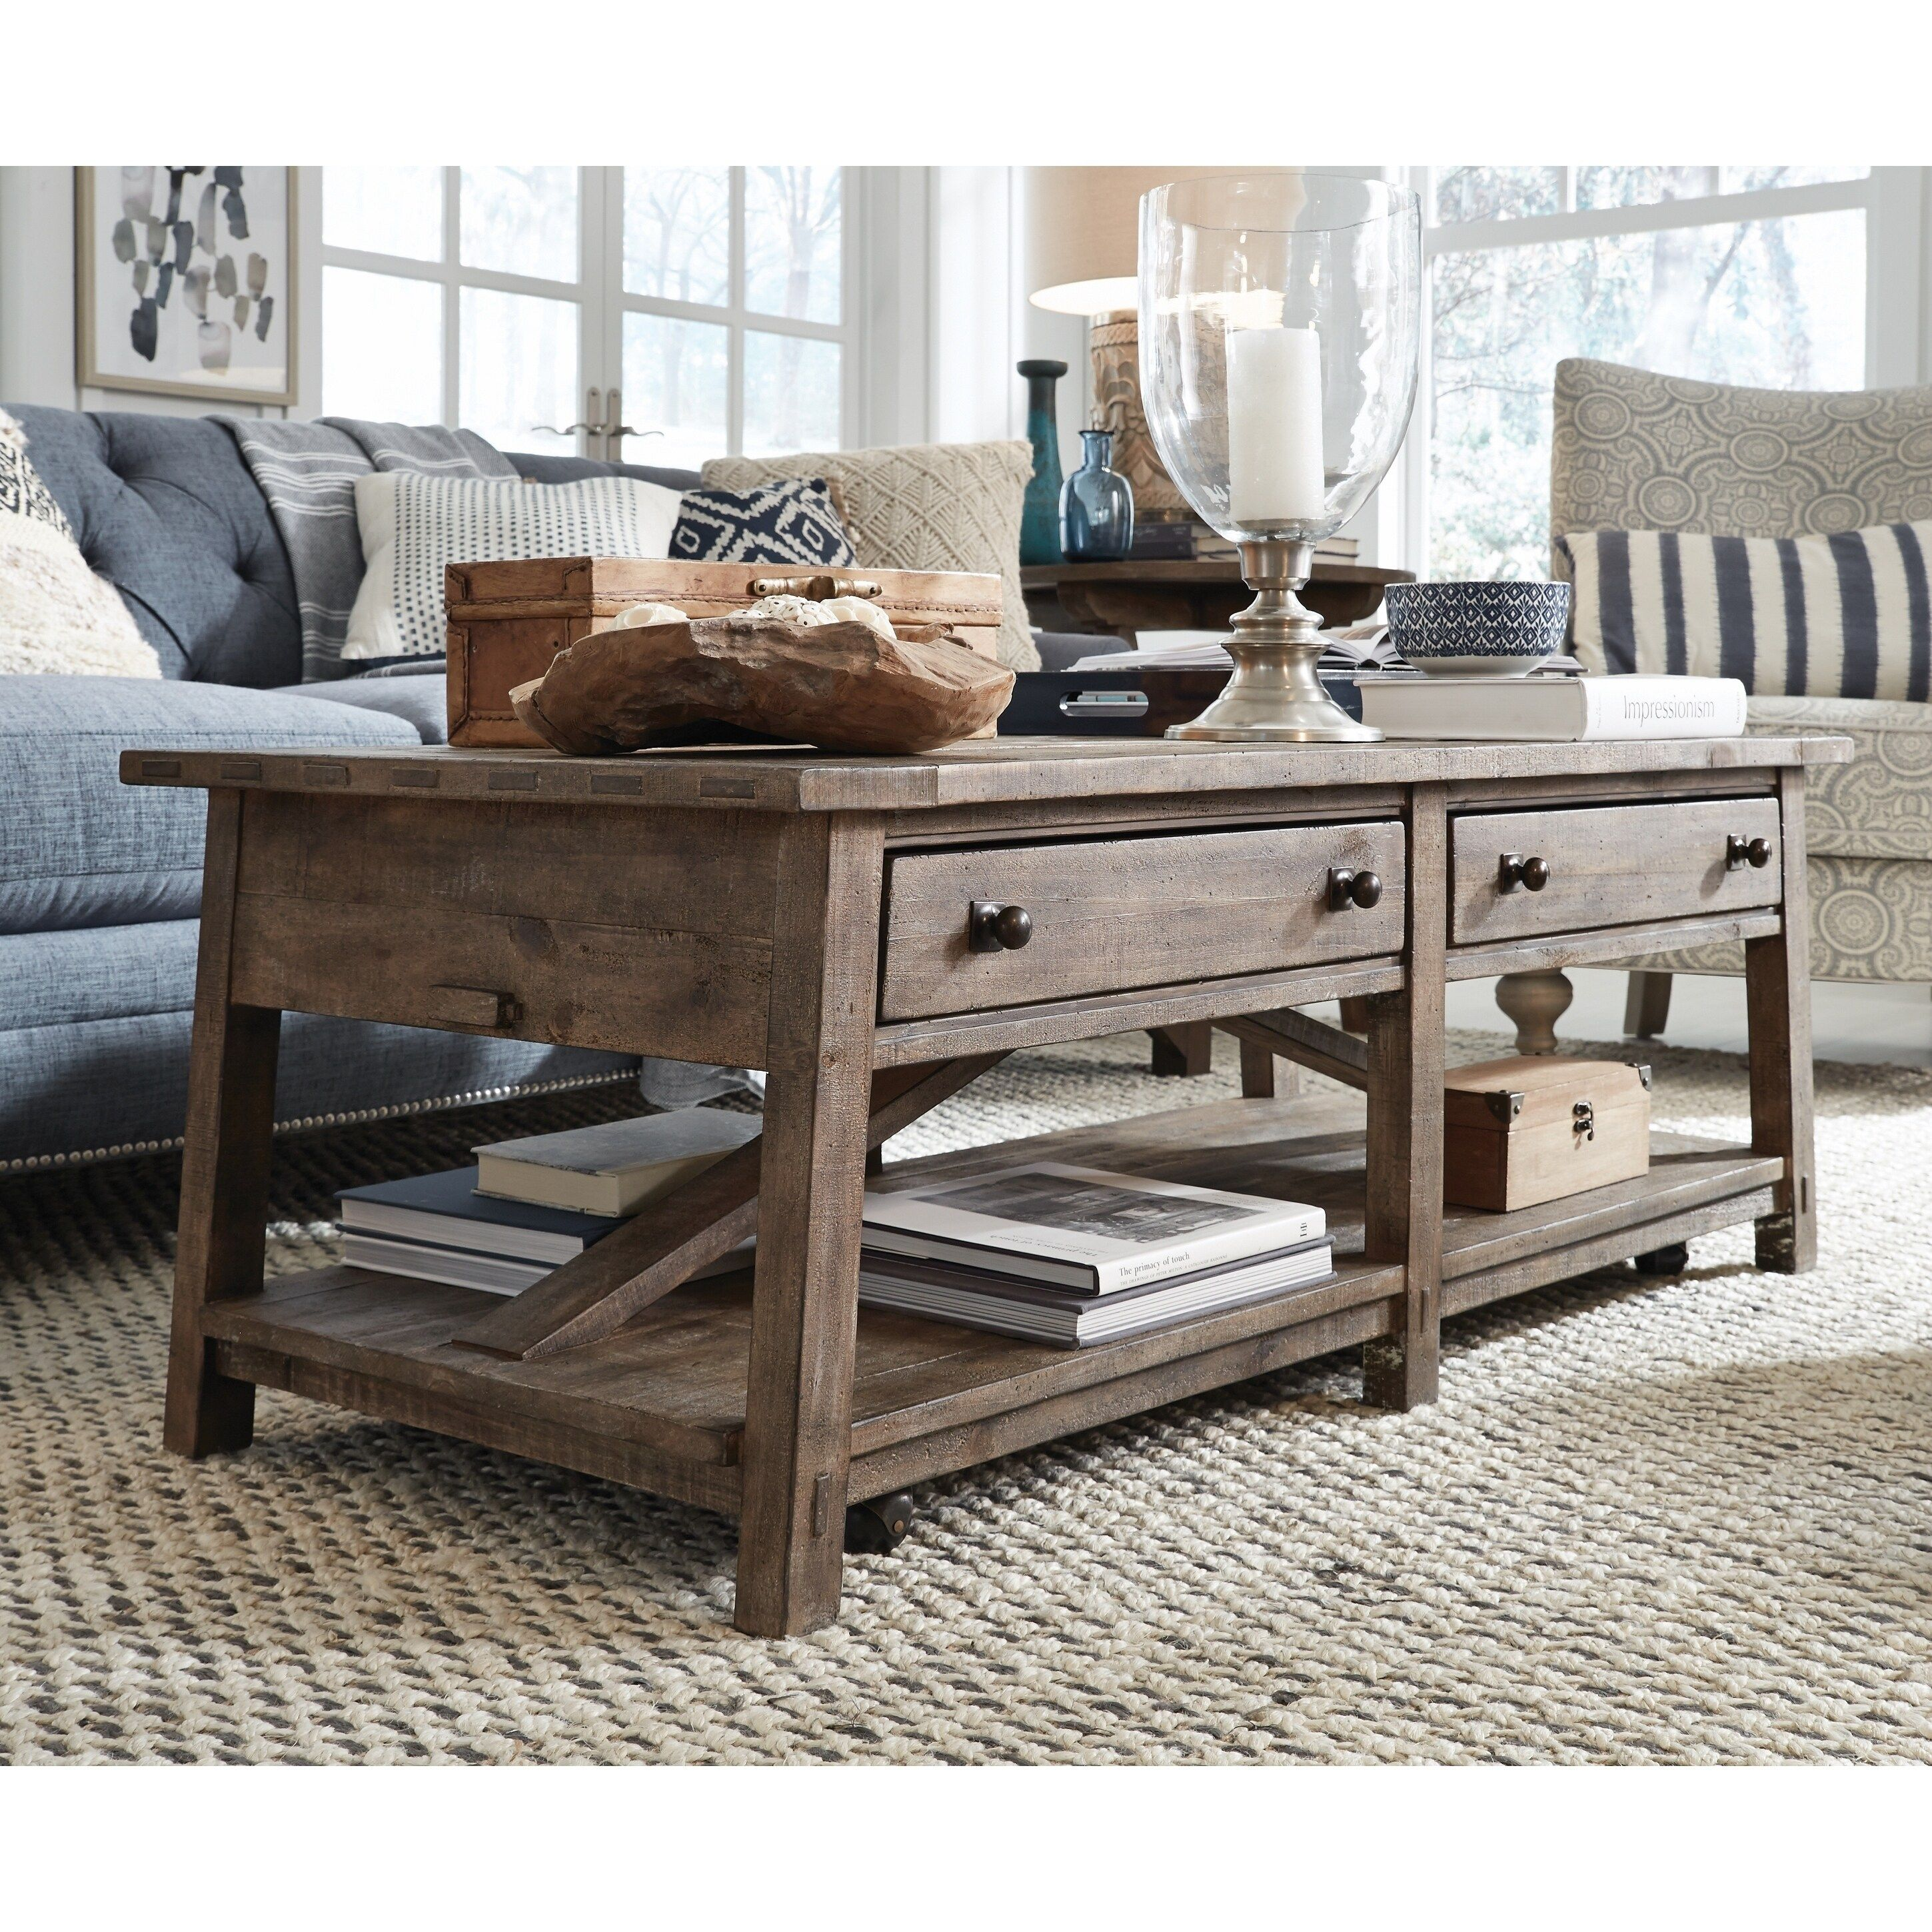 Bluff Heights Rustic Weathered Coffee Table With Casters Brown Coffee Table Coffee Table With Casters Coffee Table Setting [ 2899 x 2899 Pixel ]